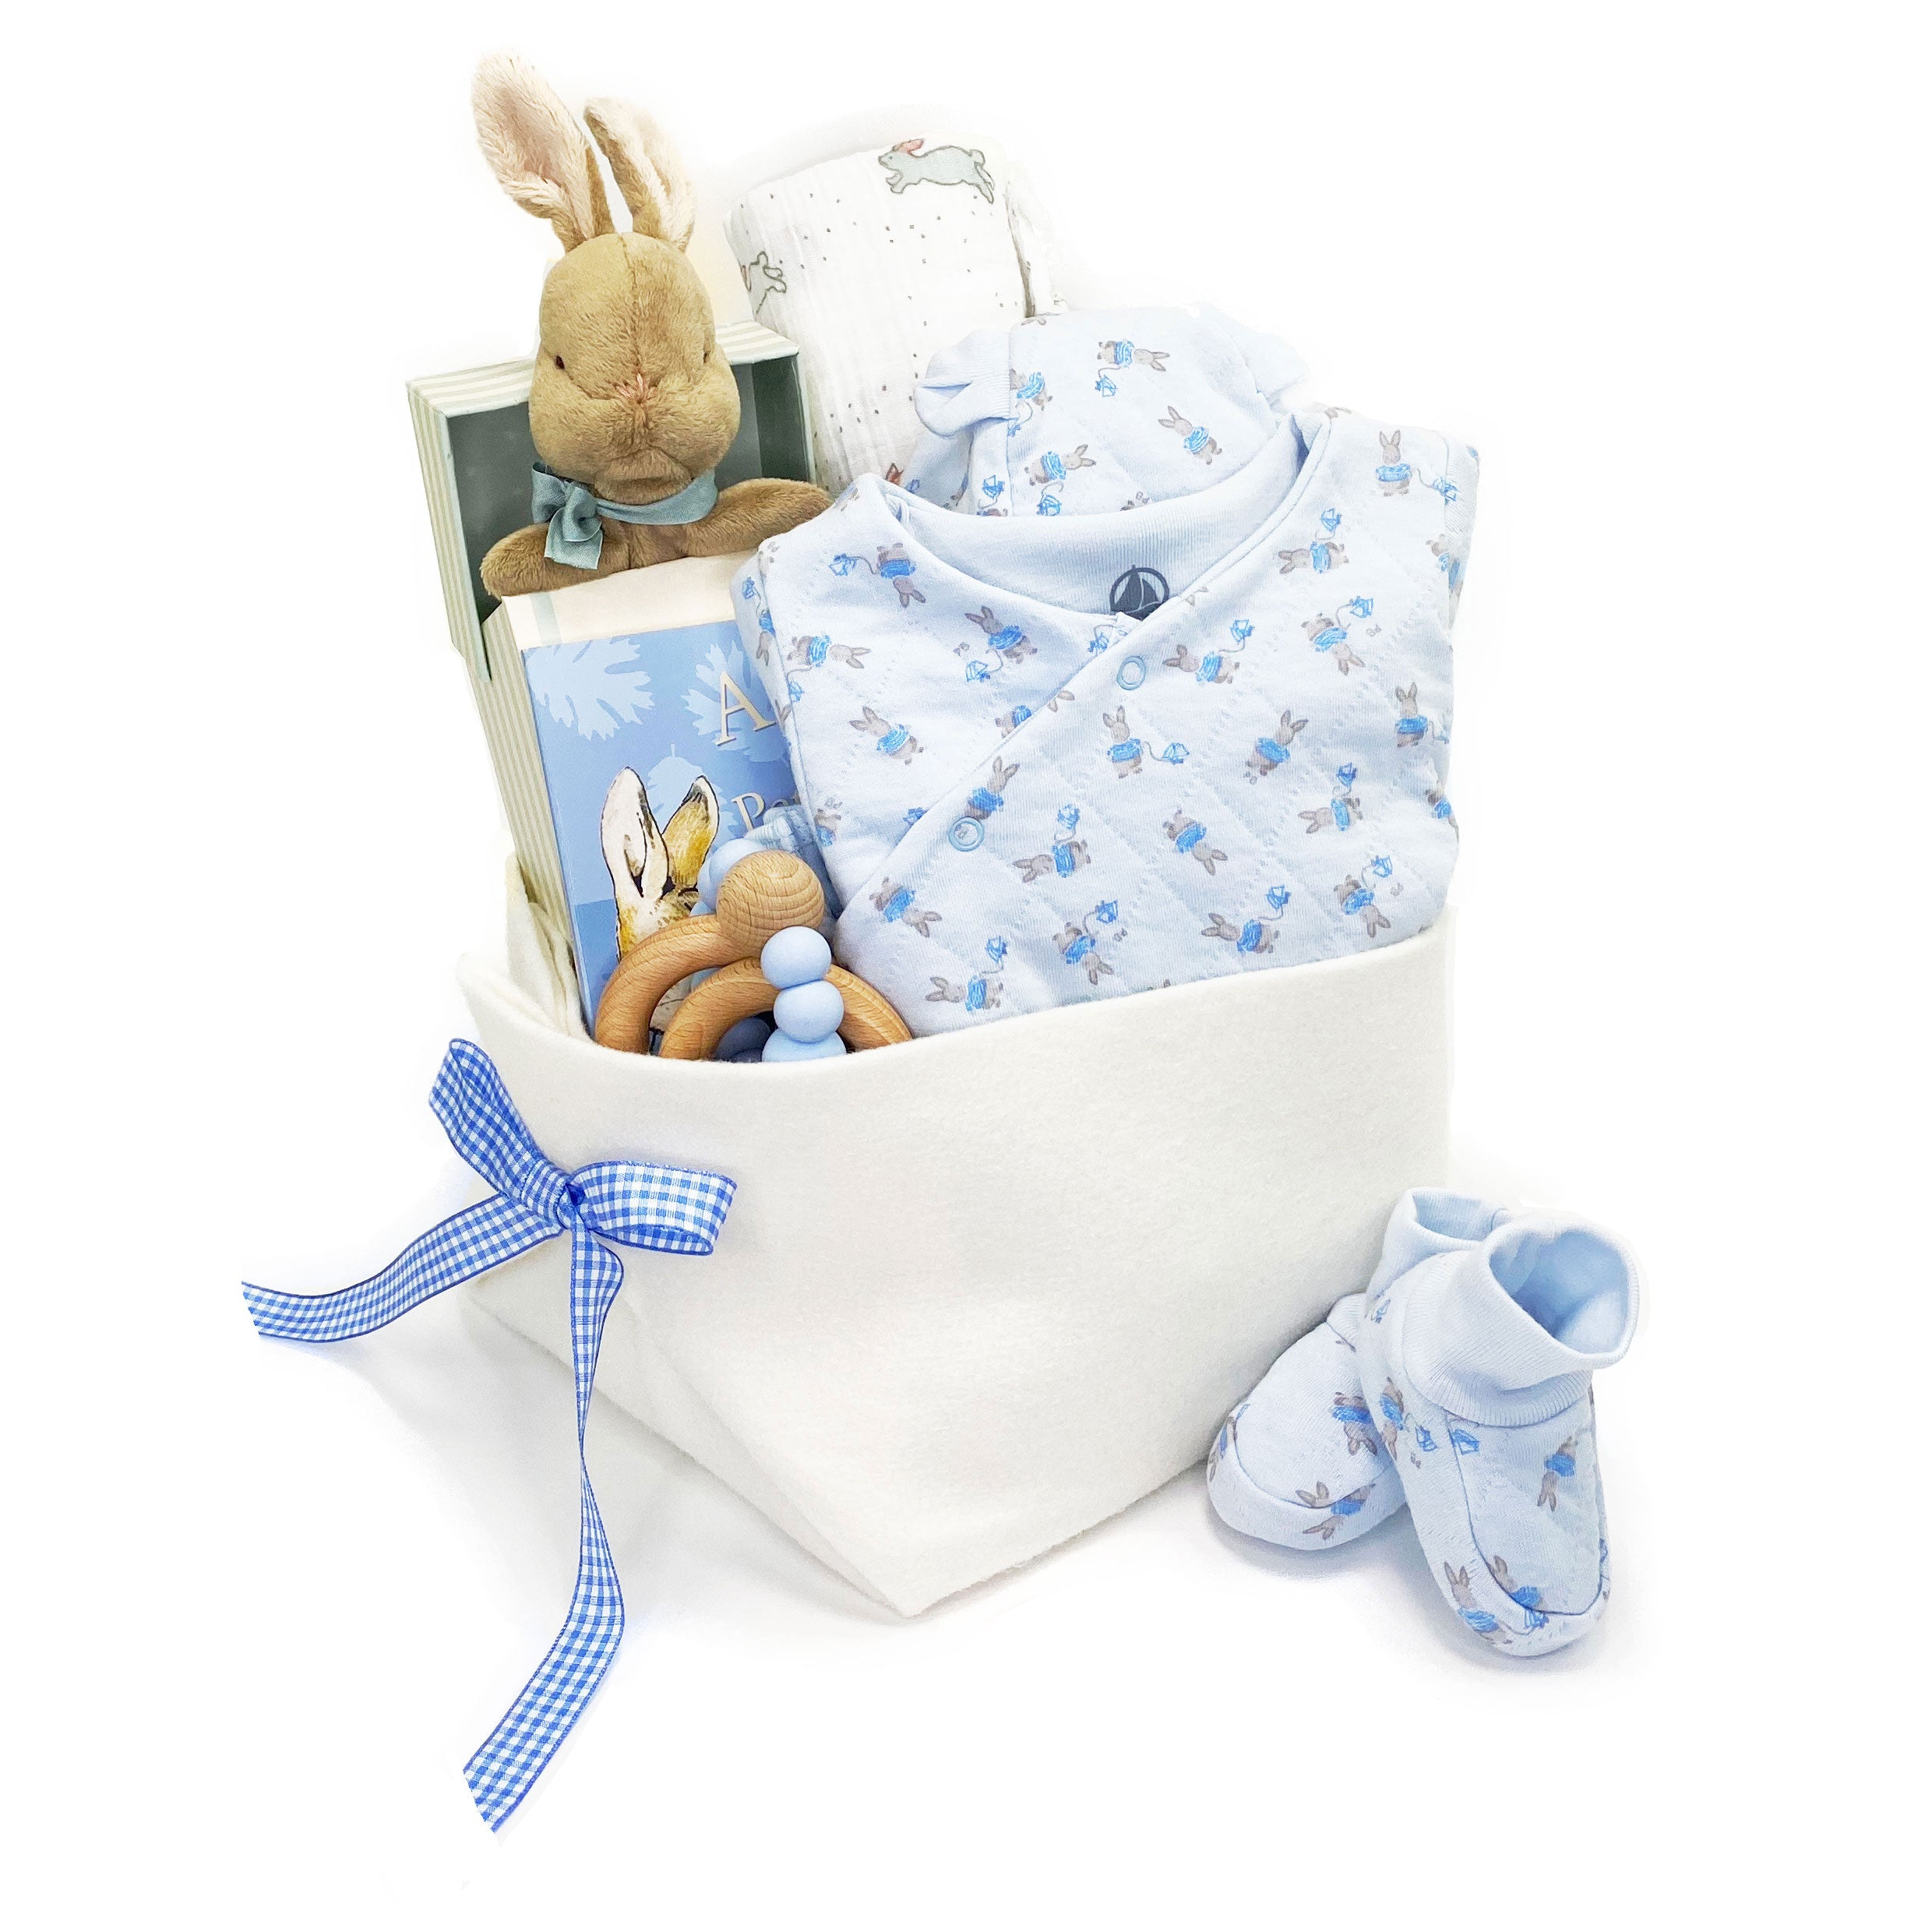 Petit Bateau Luxury Baby Gift Basket for a boy at Bonjour Baby Baskets